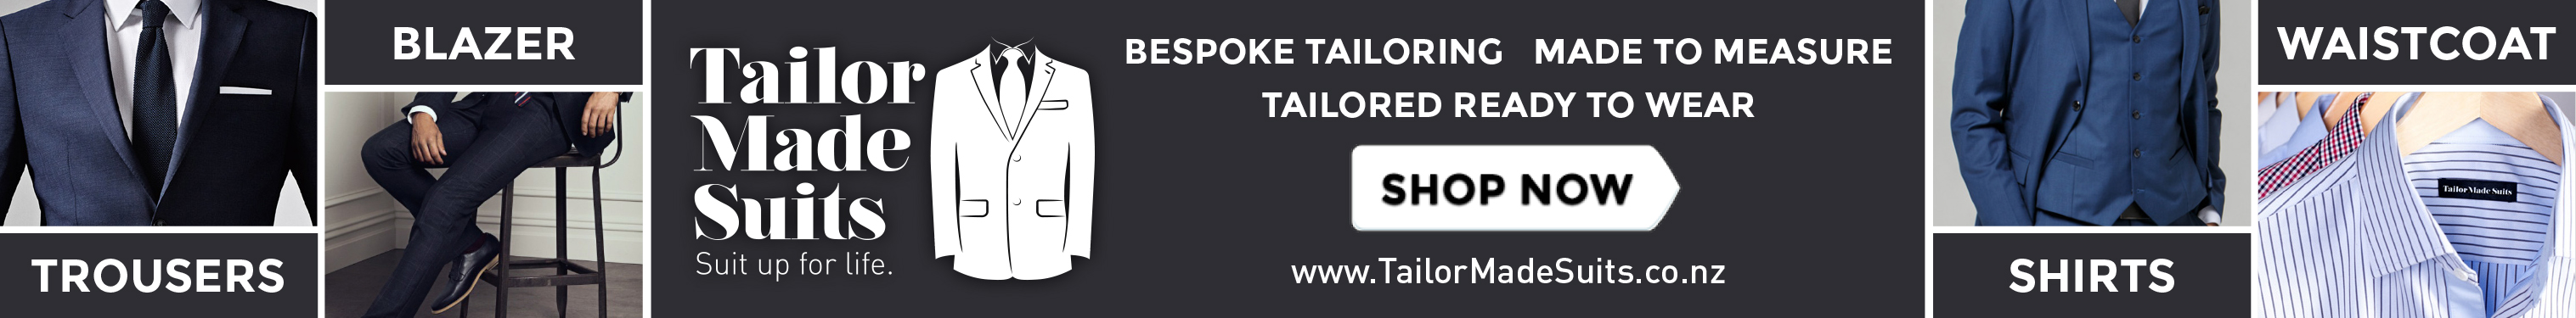 Tailor Made Suit Advertising